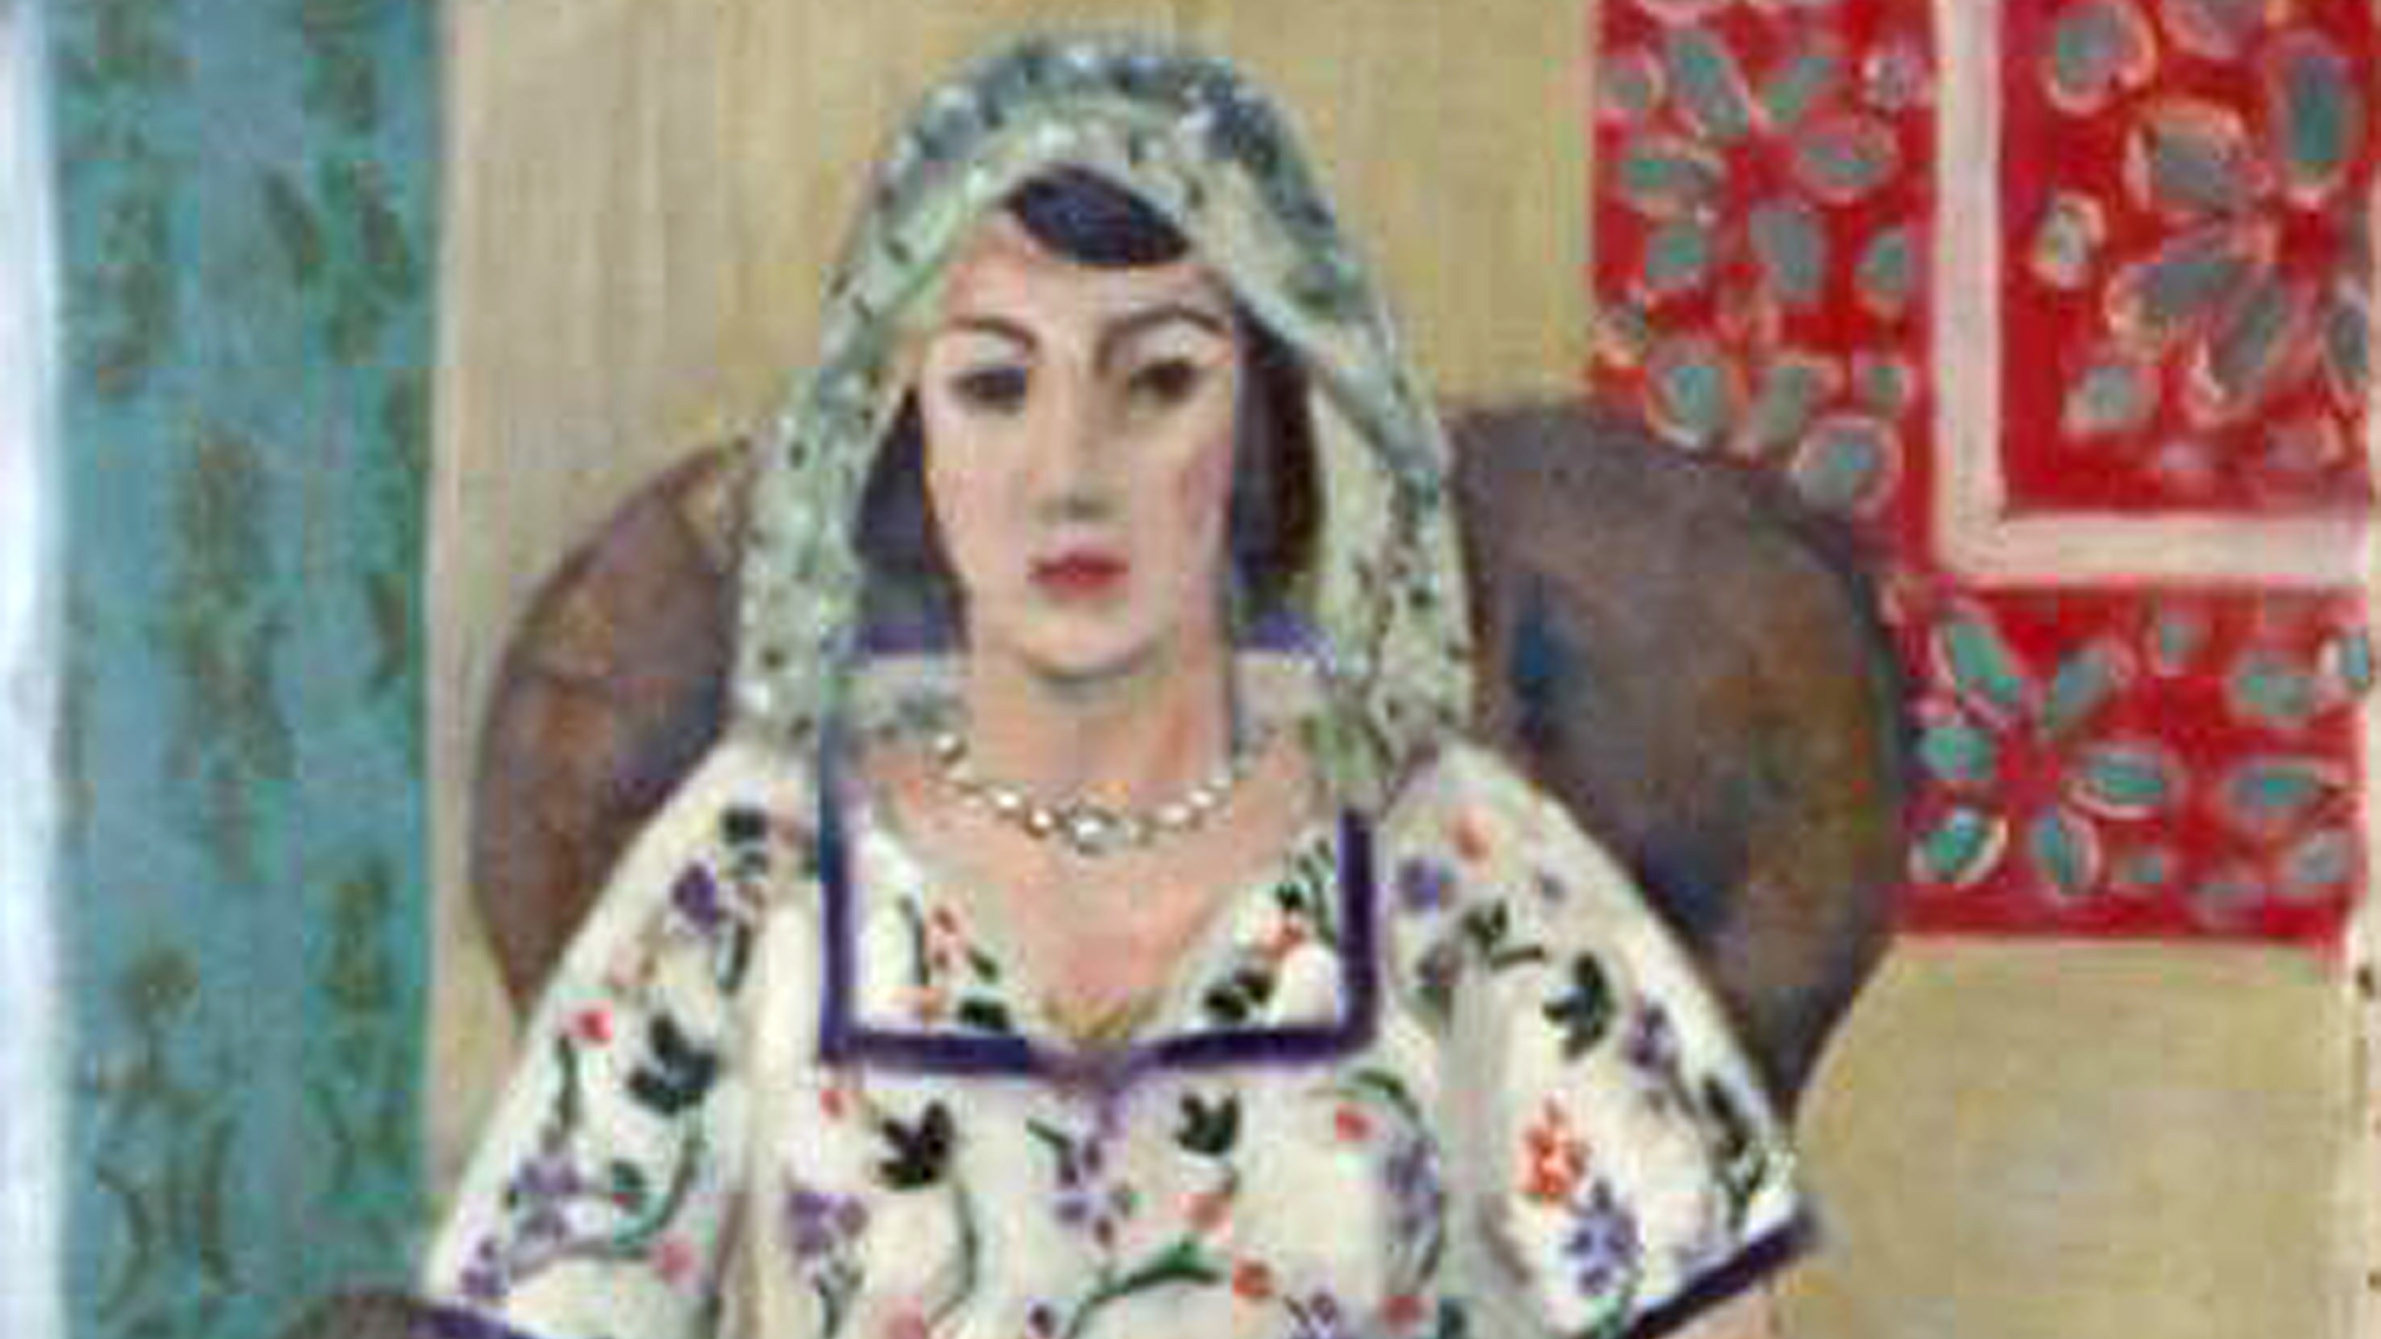 This Matisse painting is the object of competing claims in Germany.